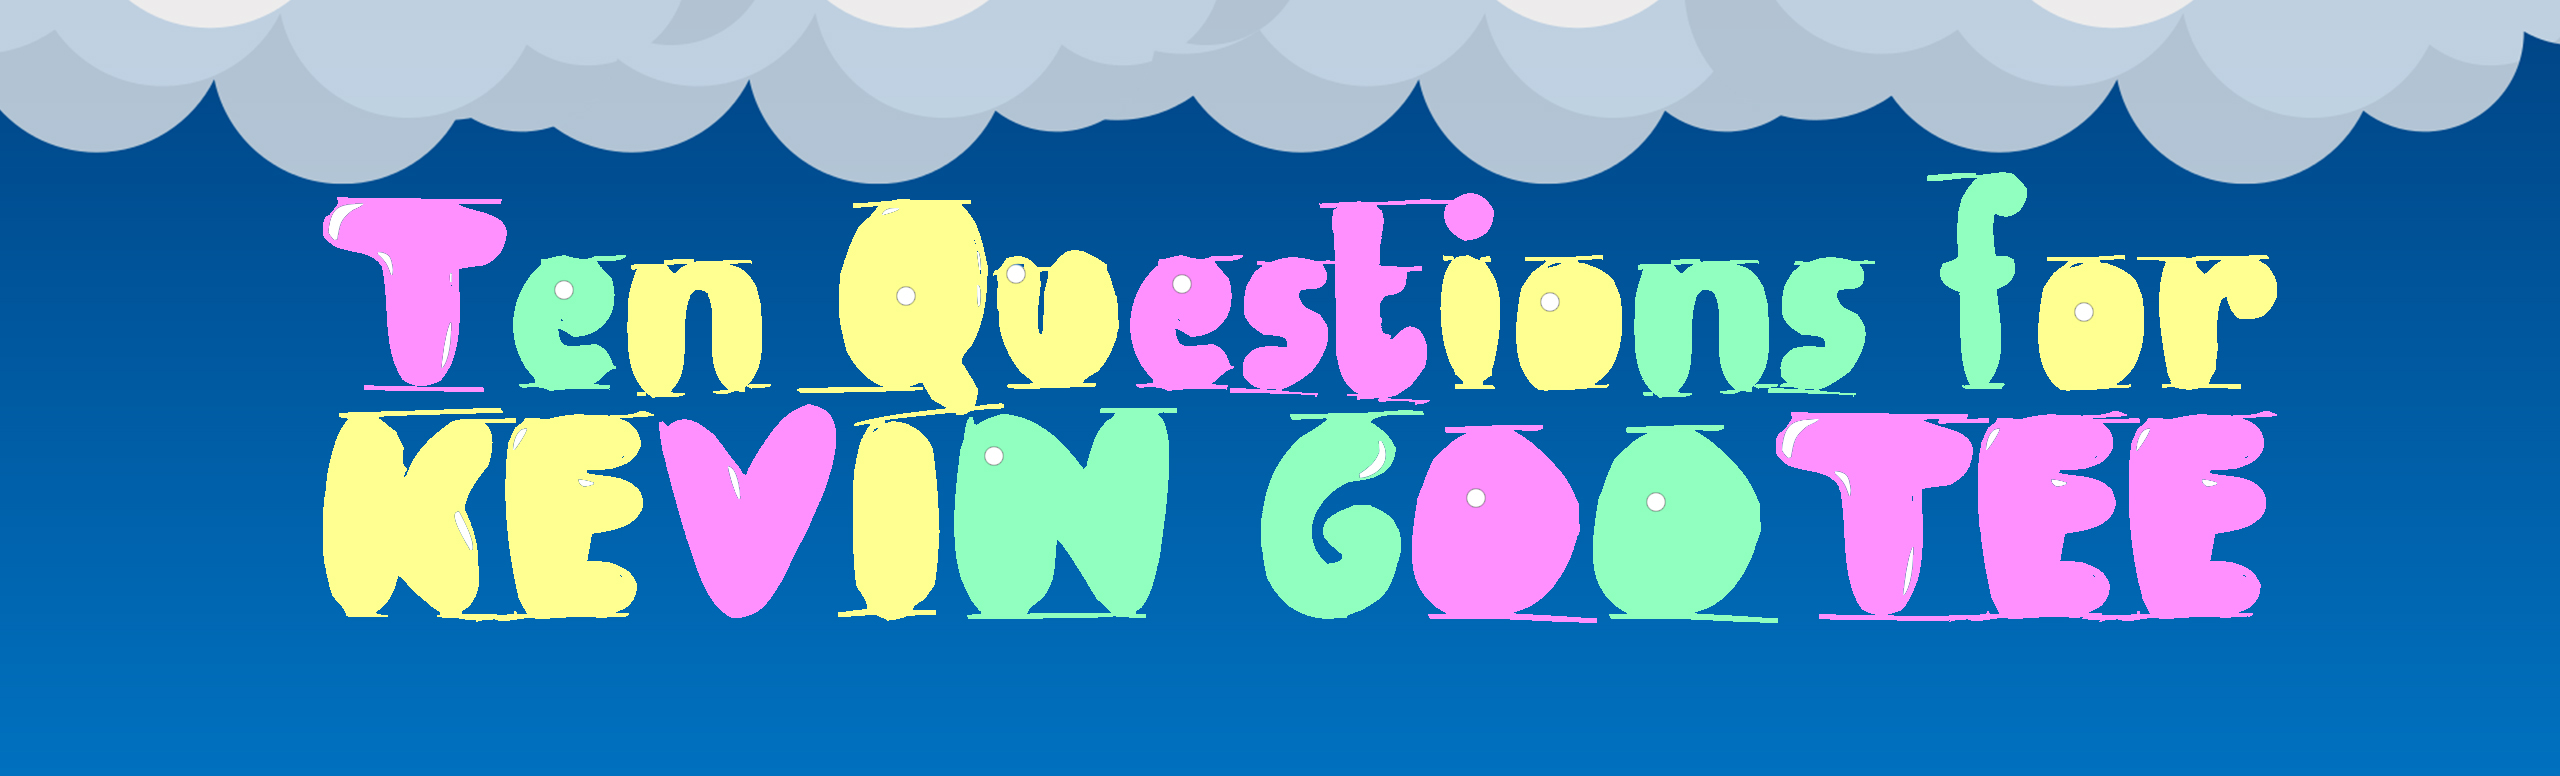 10-Questions-for-Kevin-Gootee